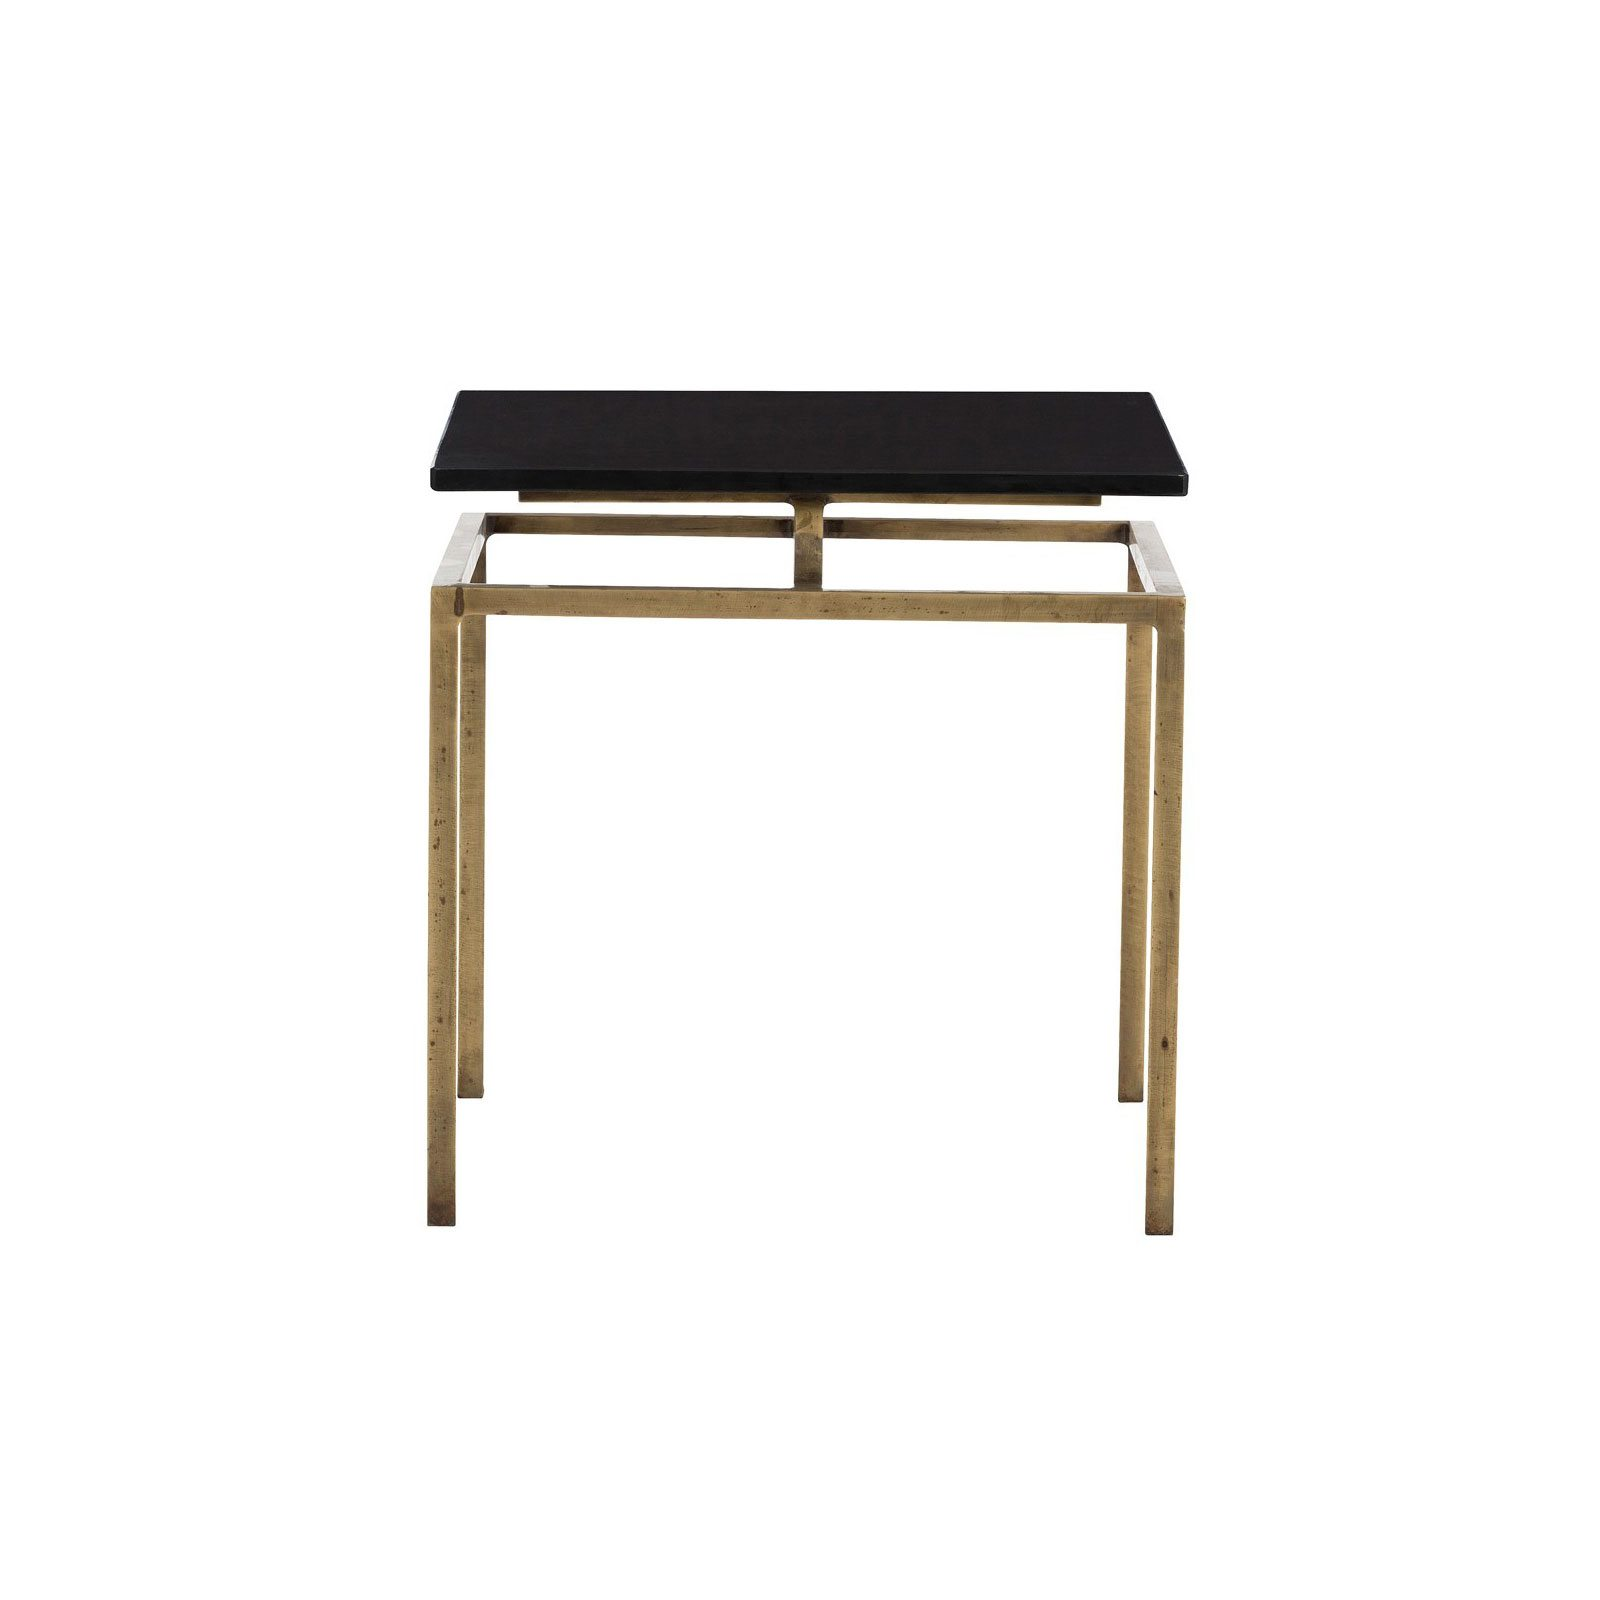 Luxury coffee side tables zara side table bonham for Coffee tables zara home